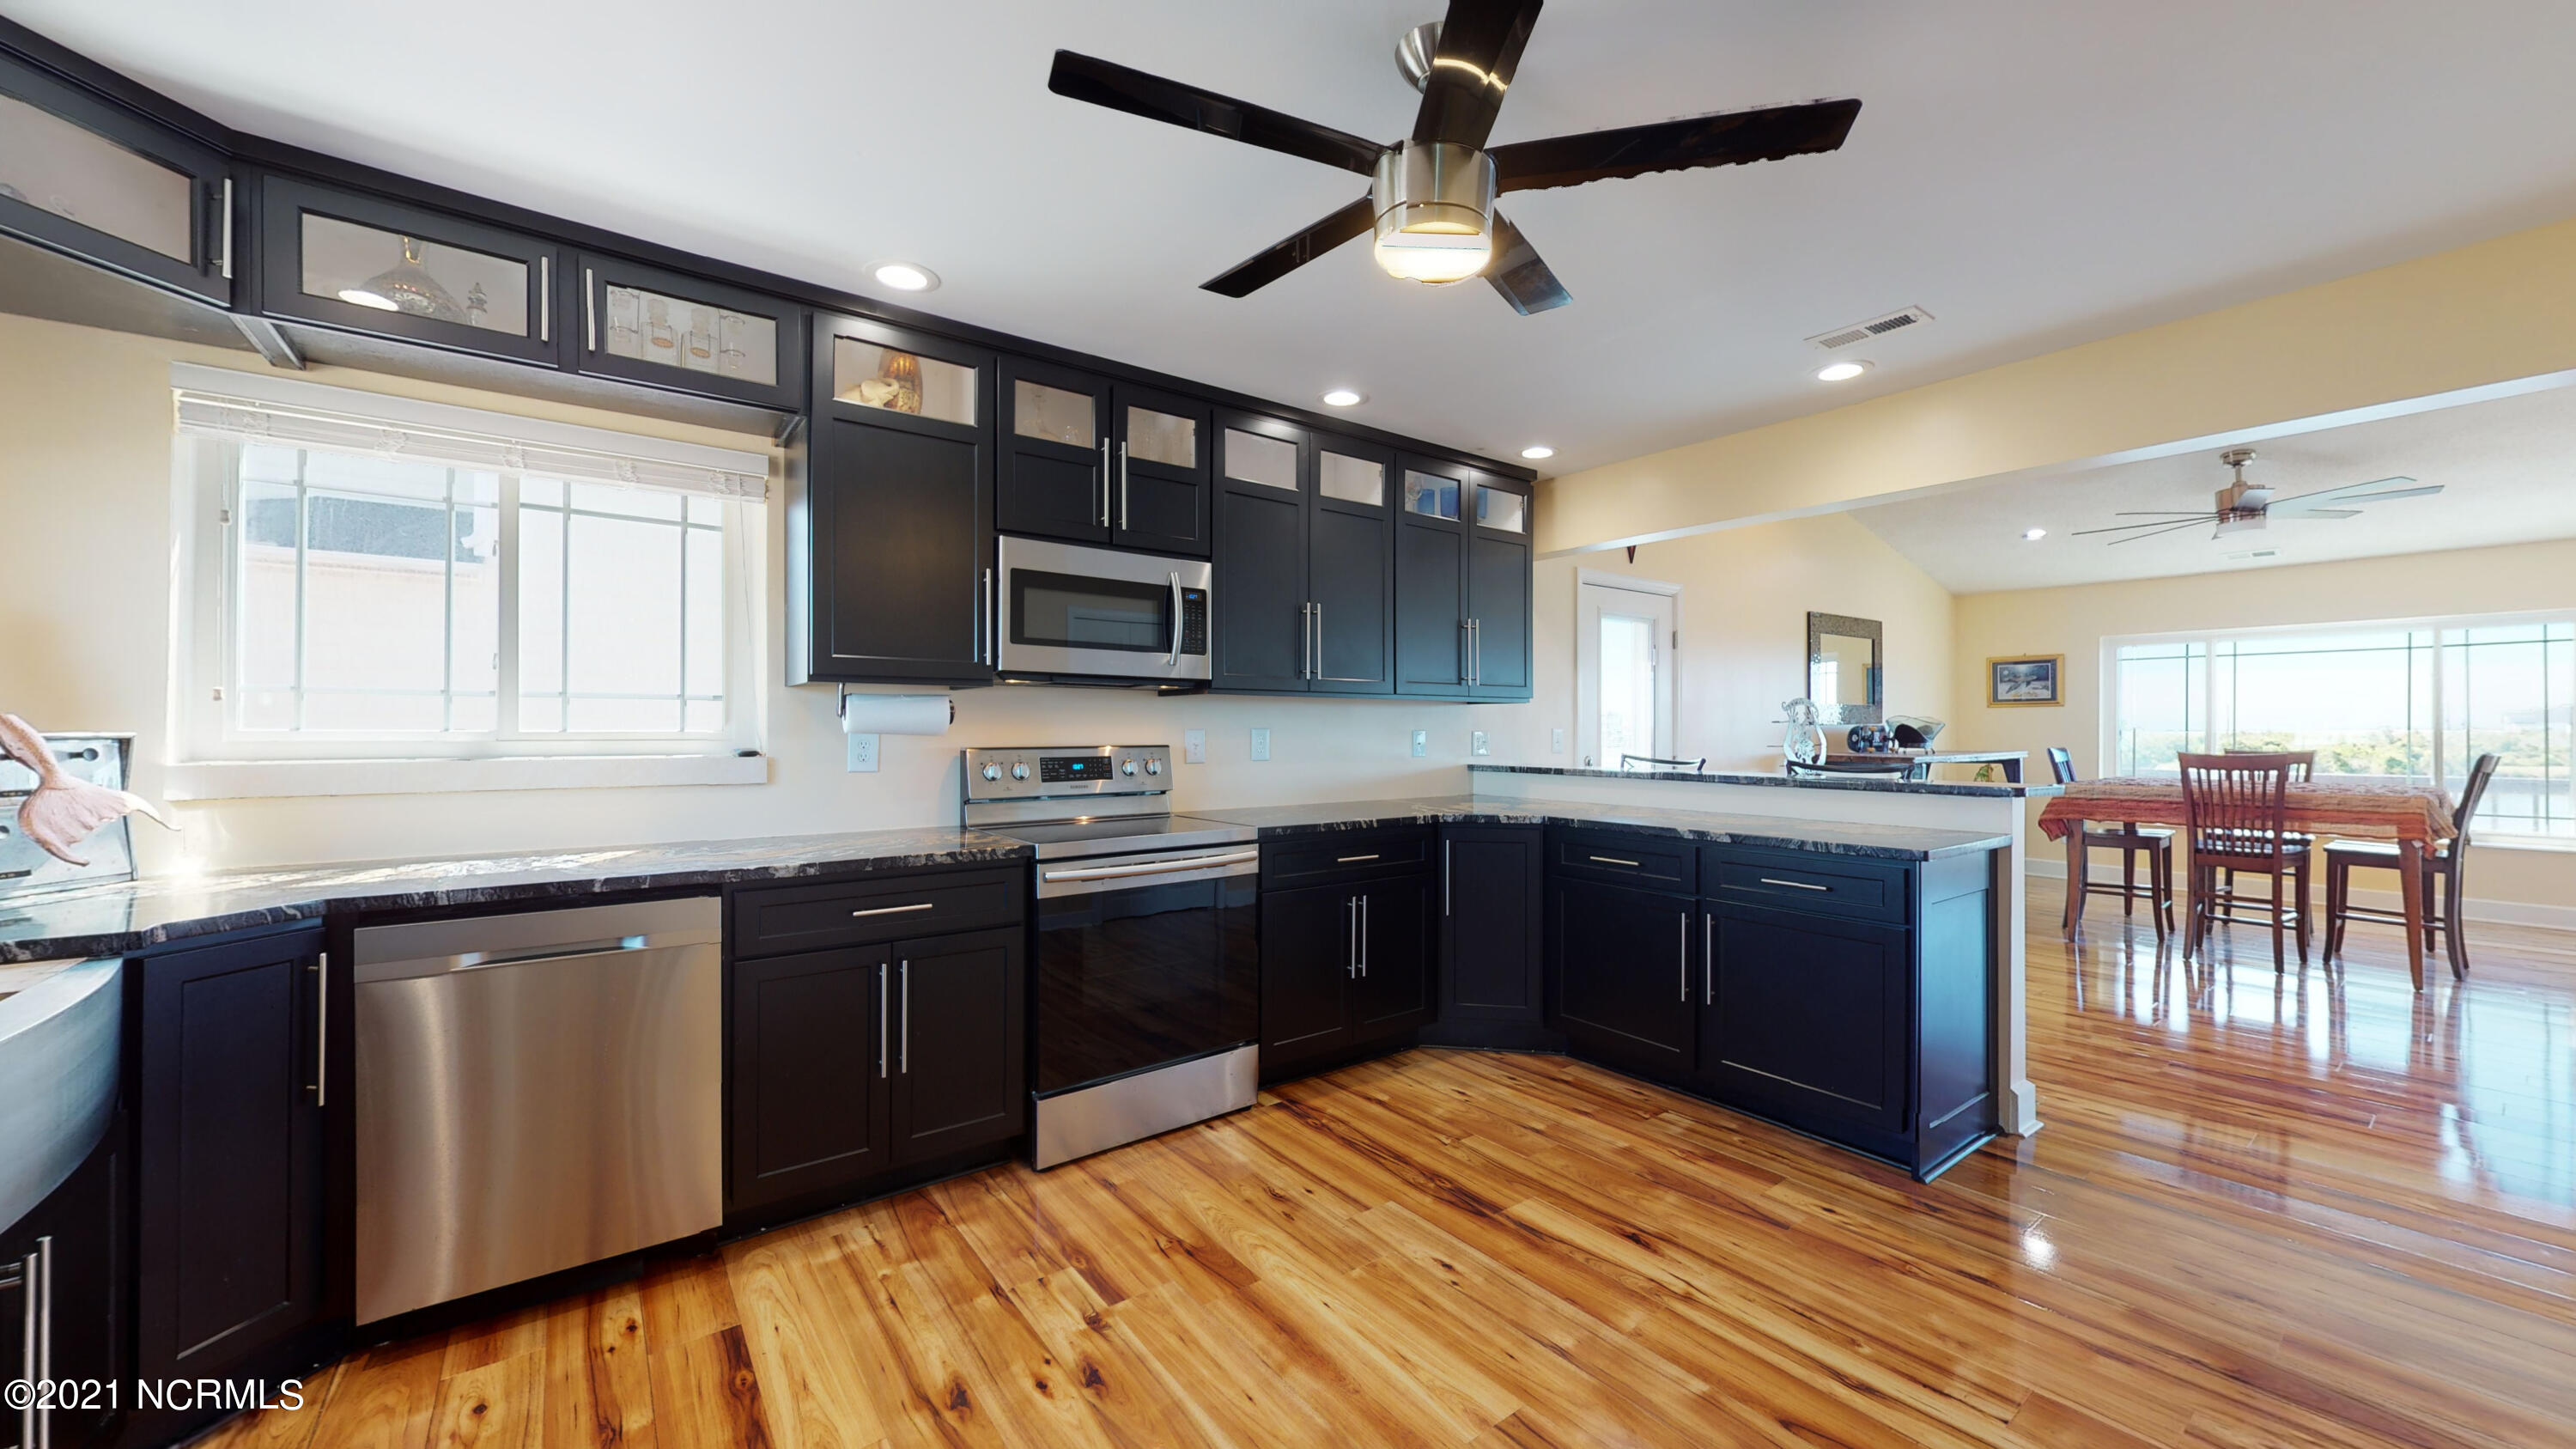 269 Grandview Drive, Sneads Ferry, North Carolina 28460, 4 Bedrooms Bedrooms, 6 Rooms Rooms,2 BathroomsBathrooms,Single family residence,For sale,Grandview,100275110